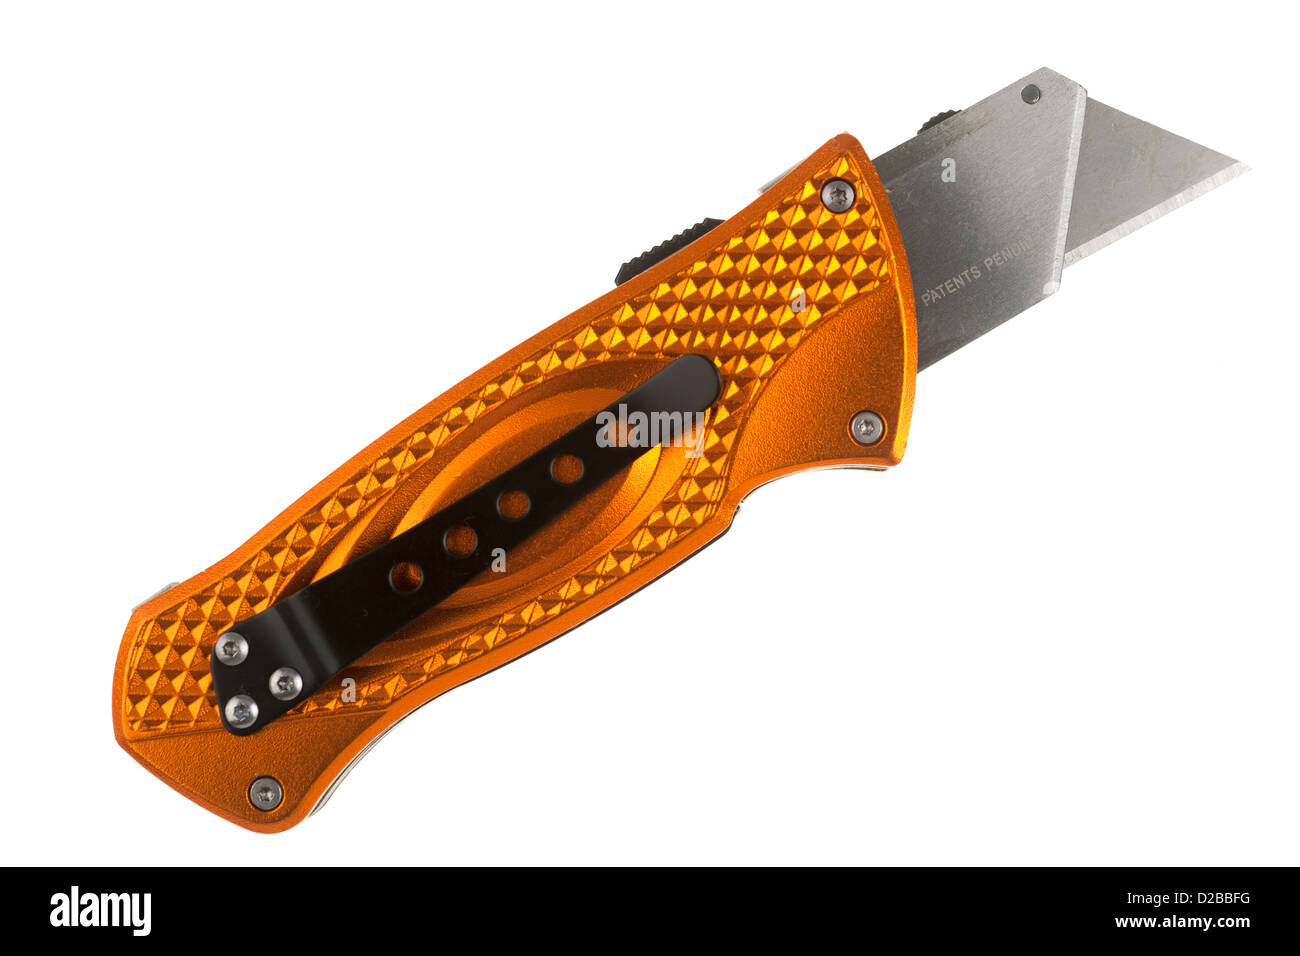 Retractable safety utility knife - Stock Image